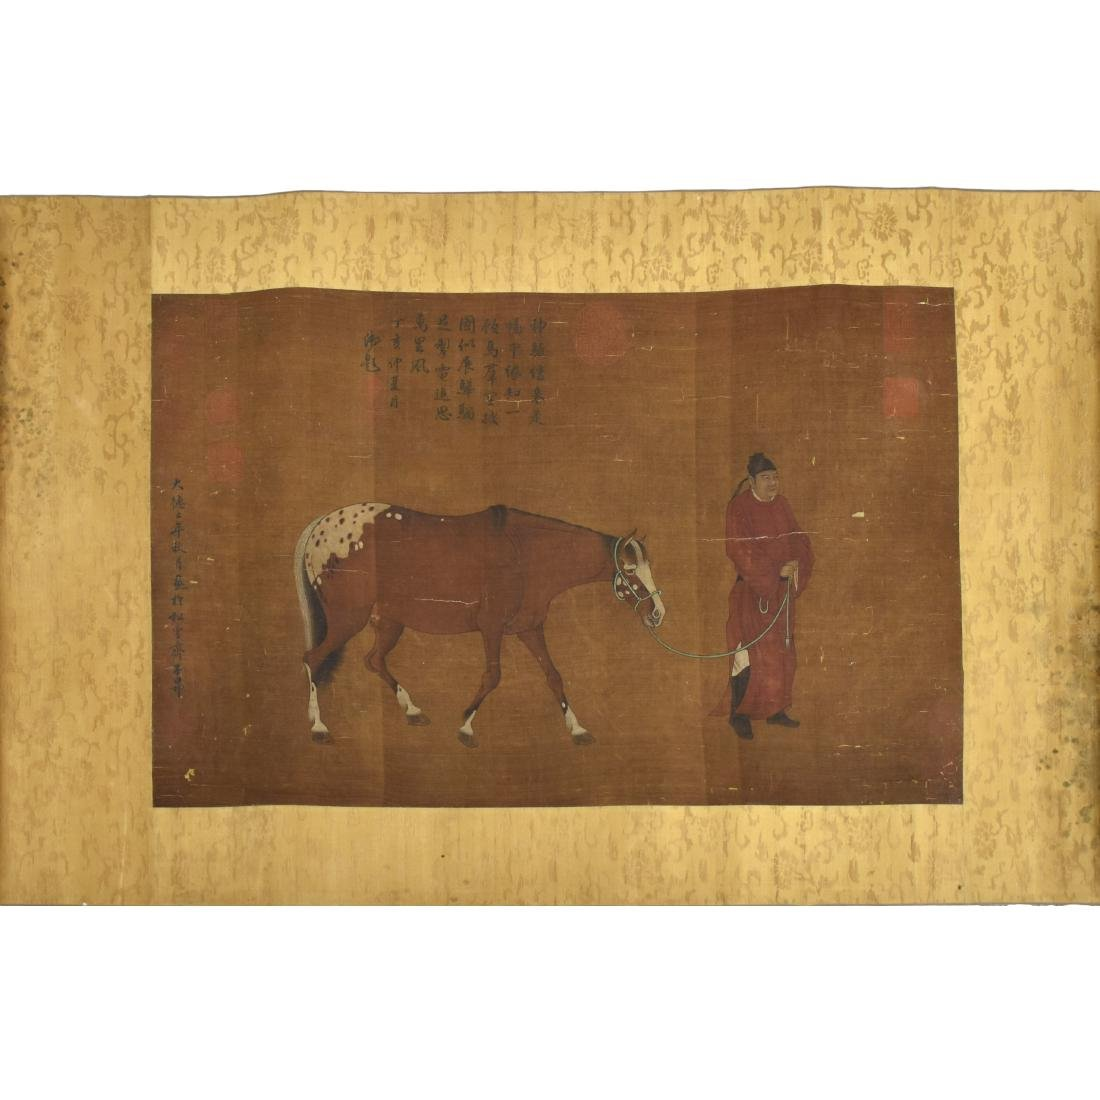 CHINESE QING DYNASTY SPOTTED CELESTIAL HORSE PAINTING - 2